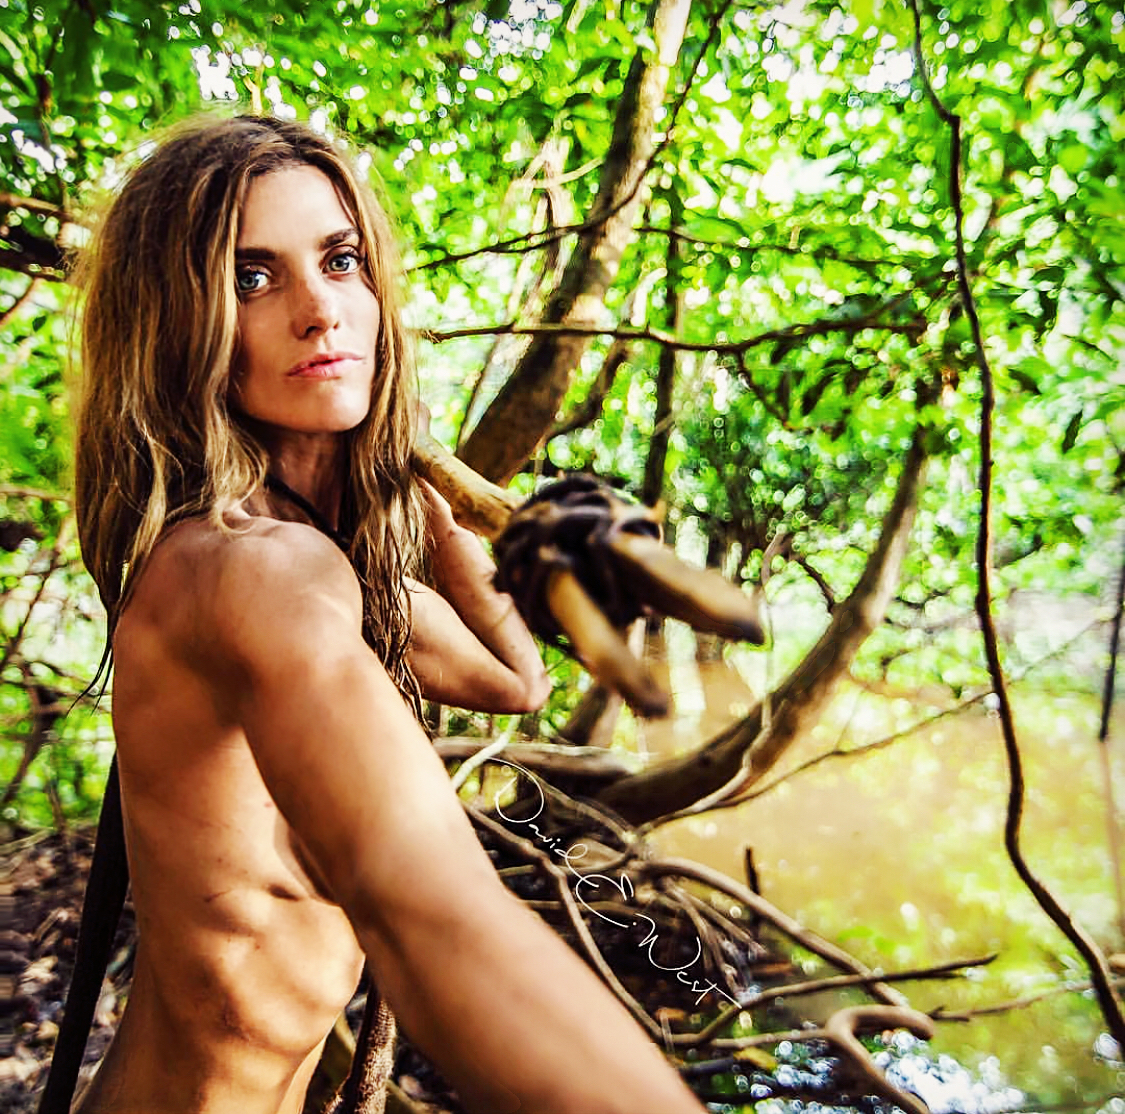 image-hot-girl-on-naked-and-afraid-perry-hot